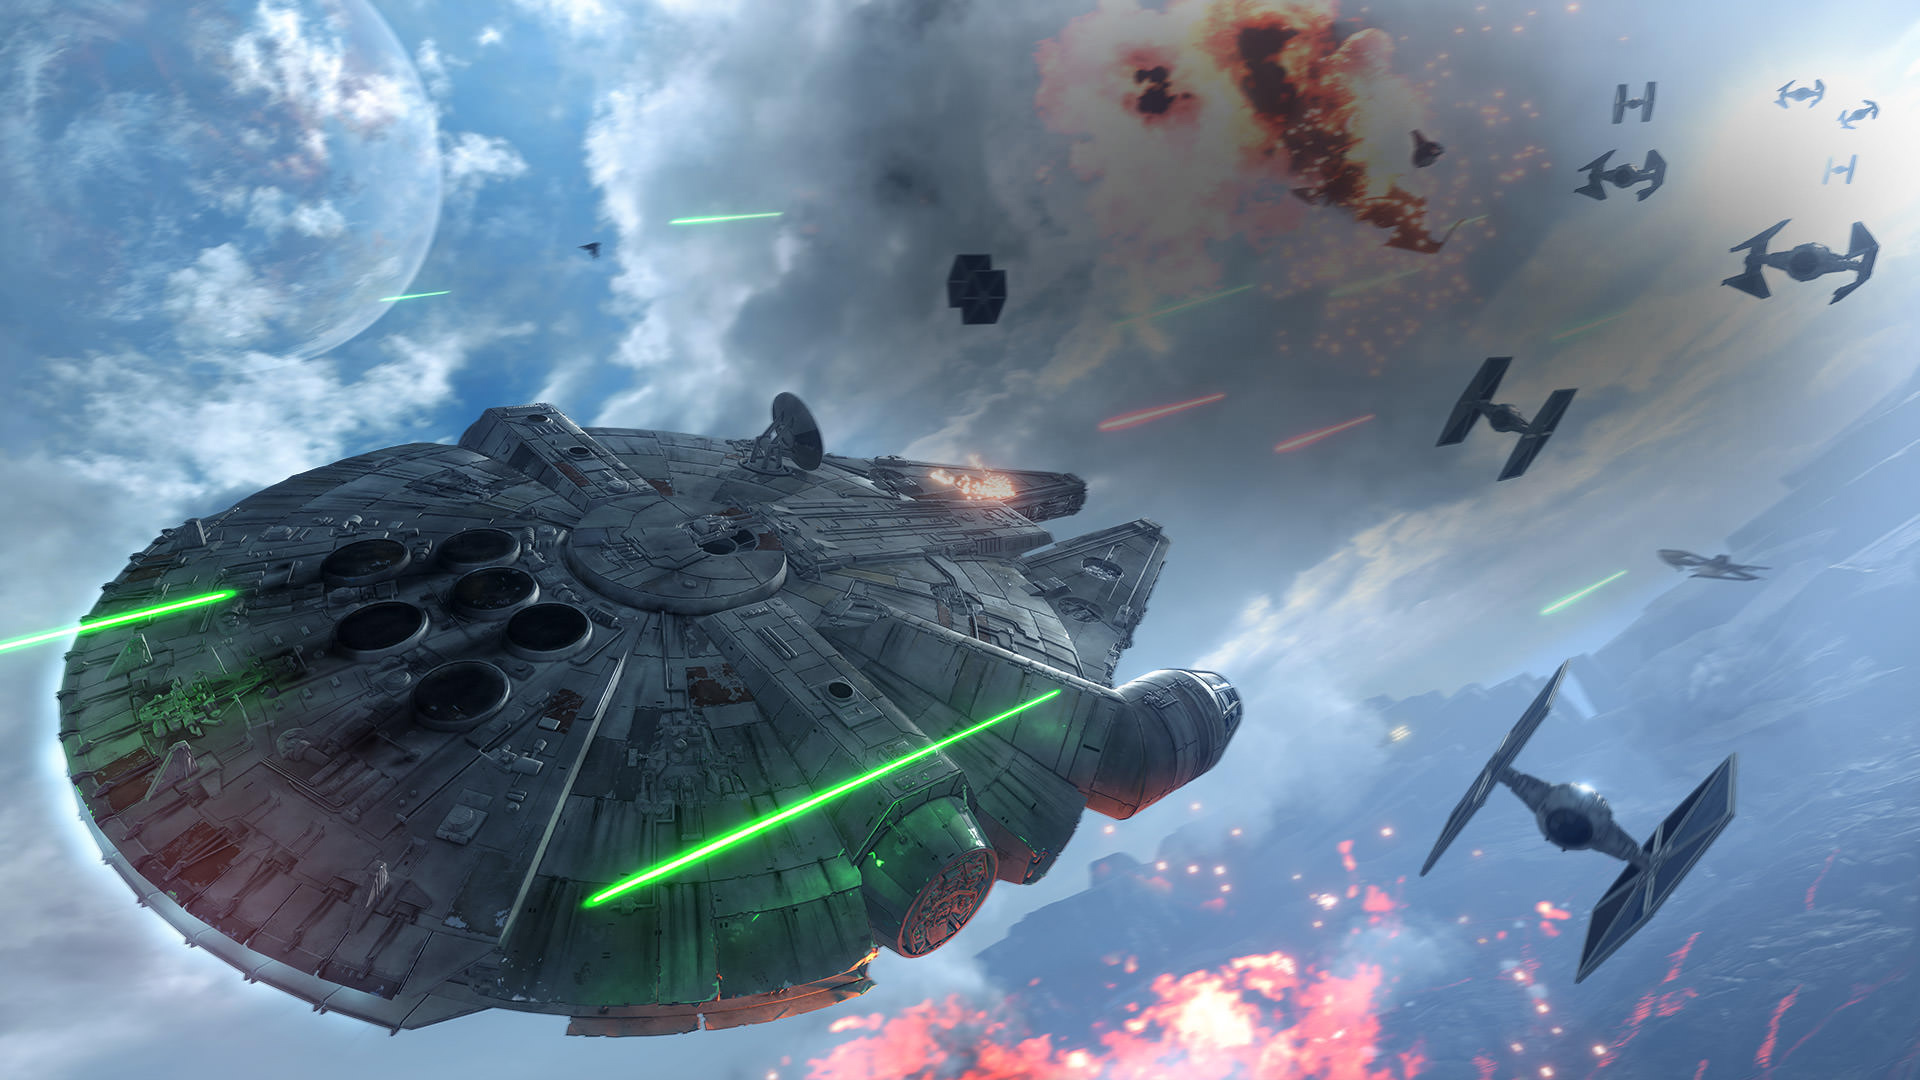 Star wars battlefront release date in Melbourne